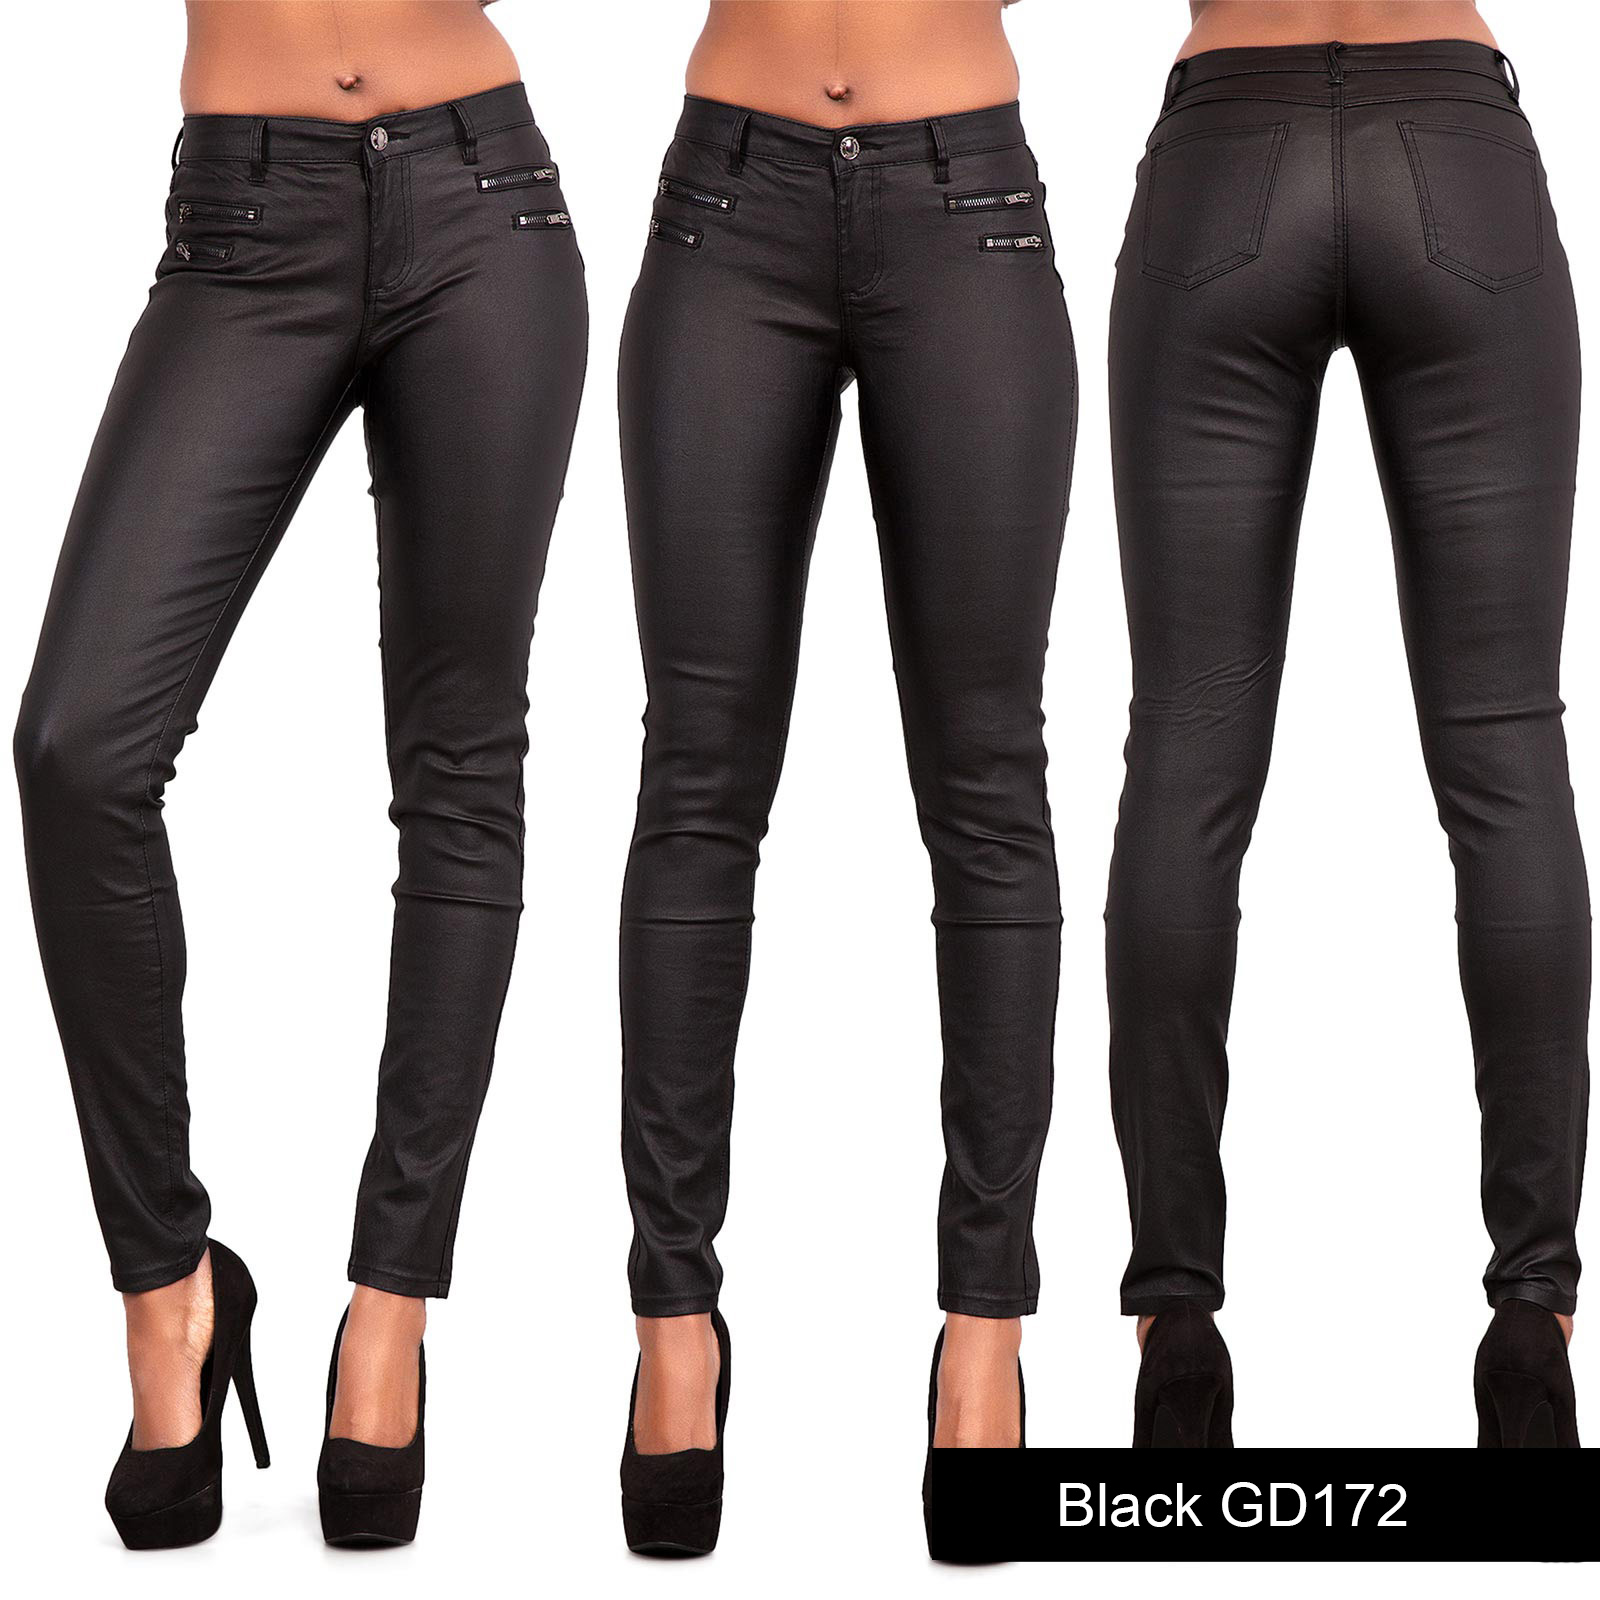 Get the best deals on black wet look jeans and save up to 70% off at Poshmark now! Whatever you're shopping for, we've got it.